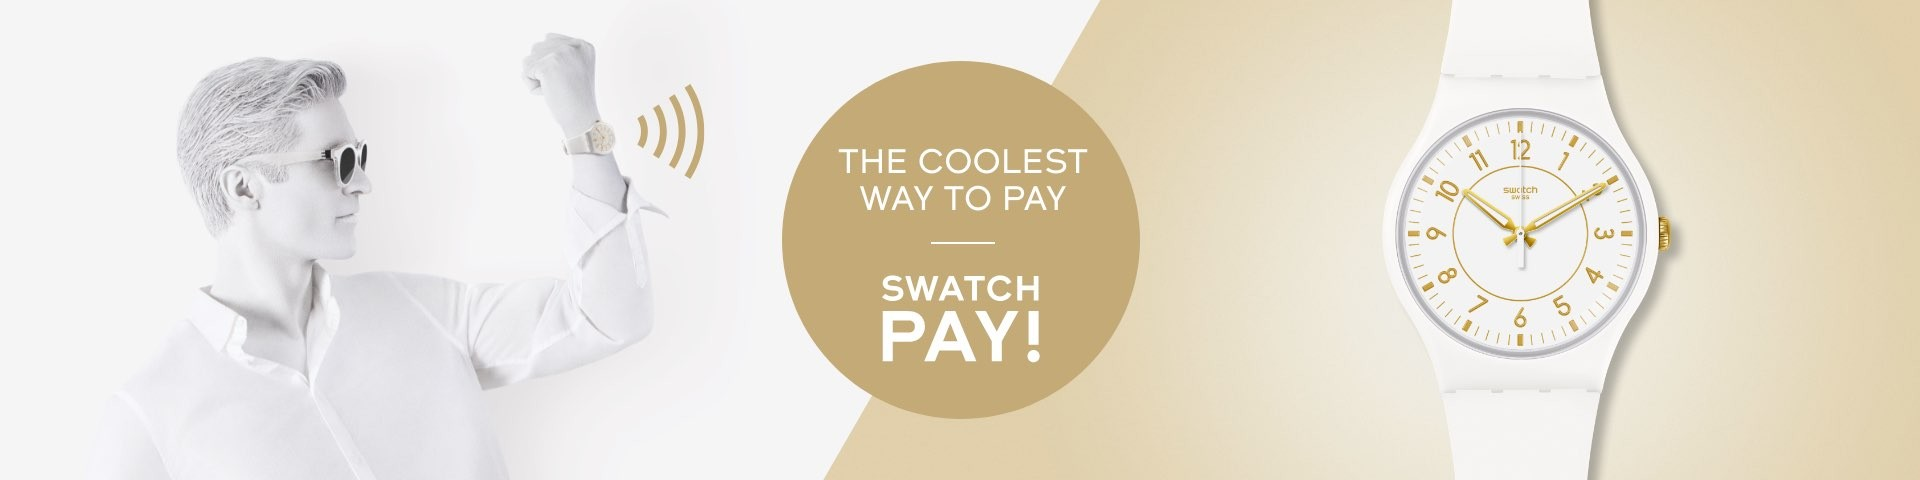 swatch pay launch desktop